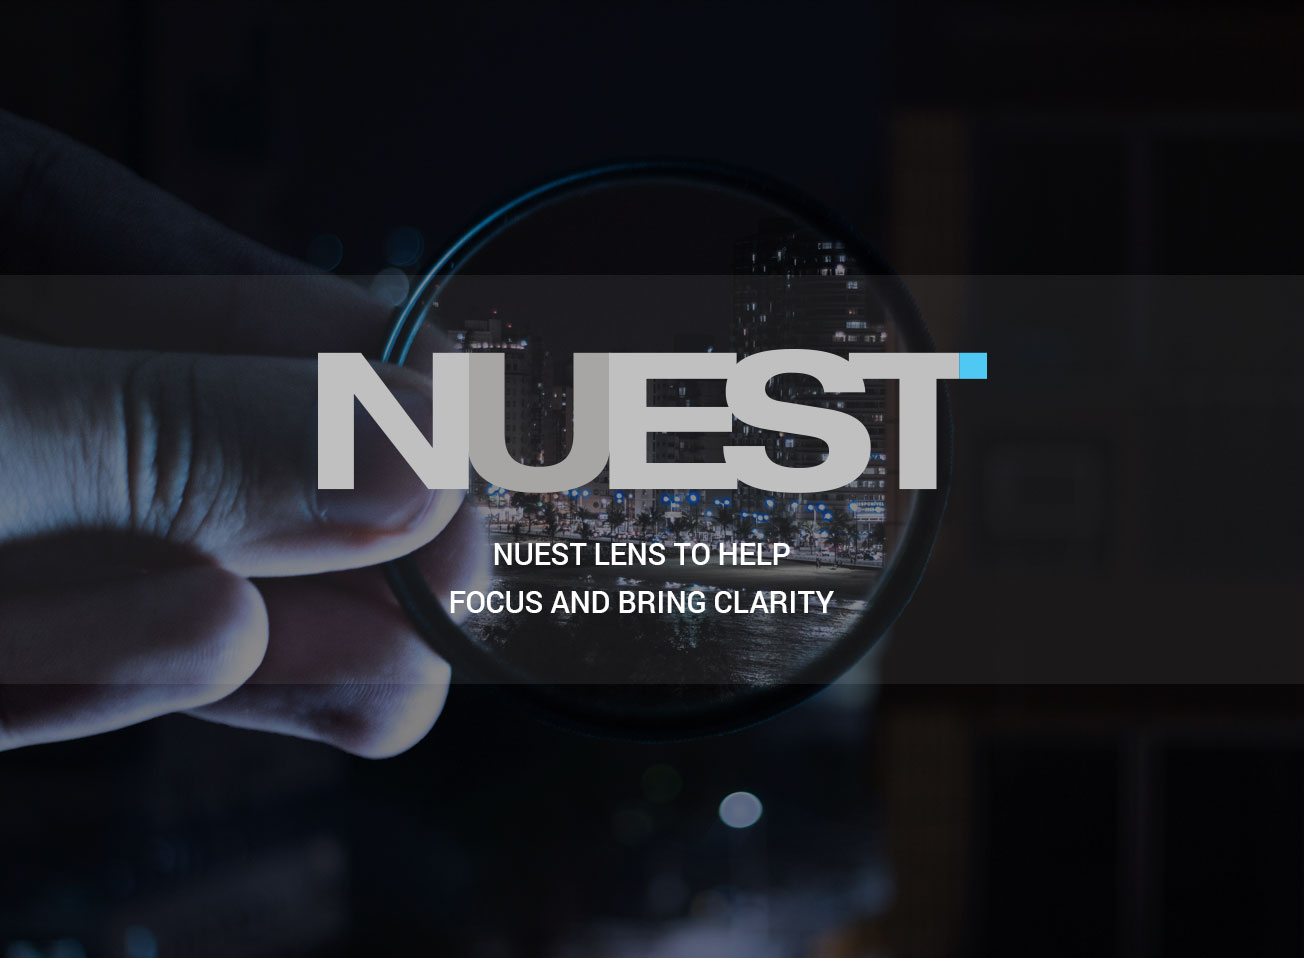 About NUEST